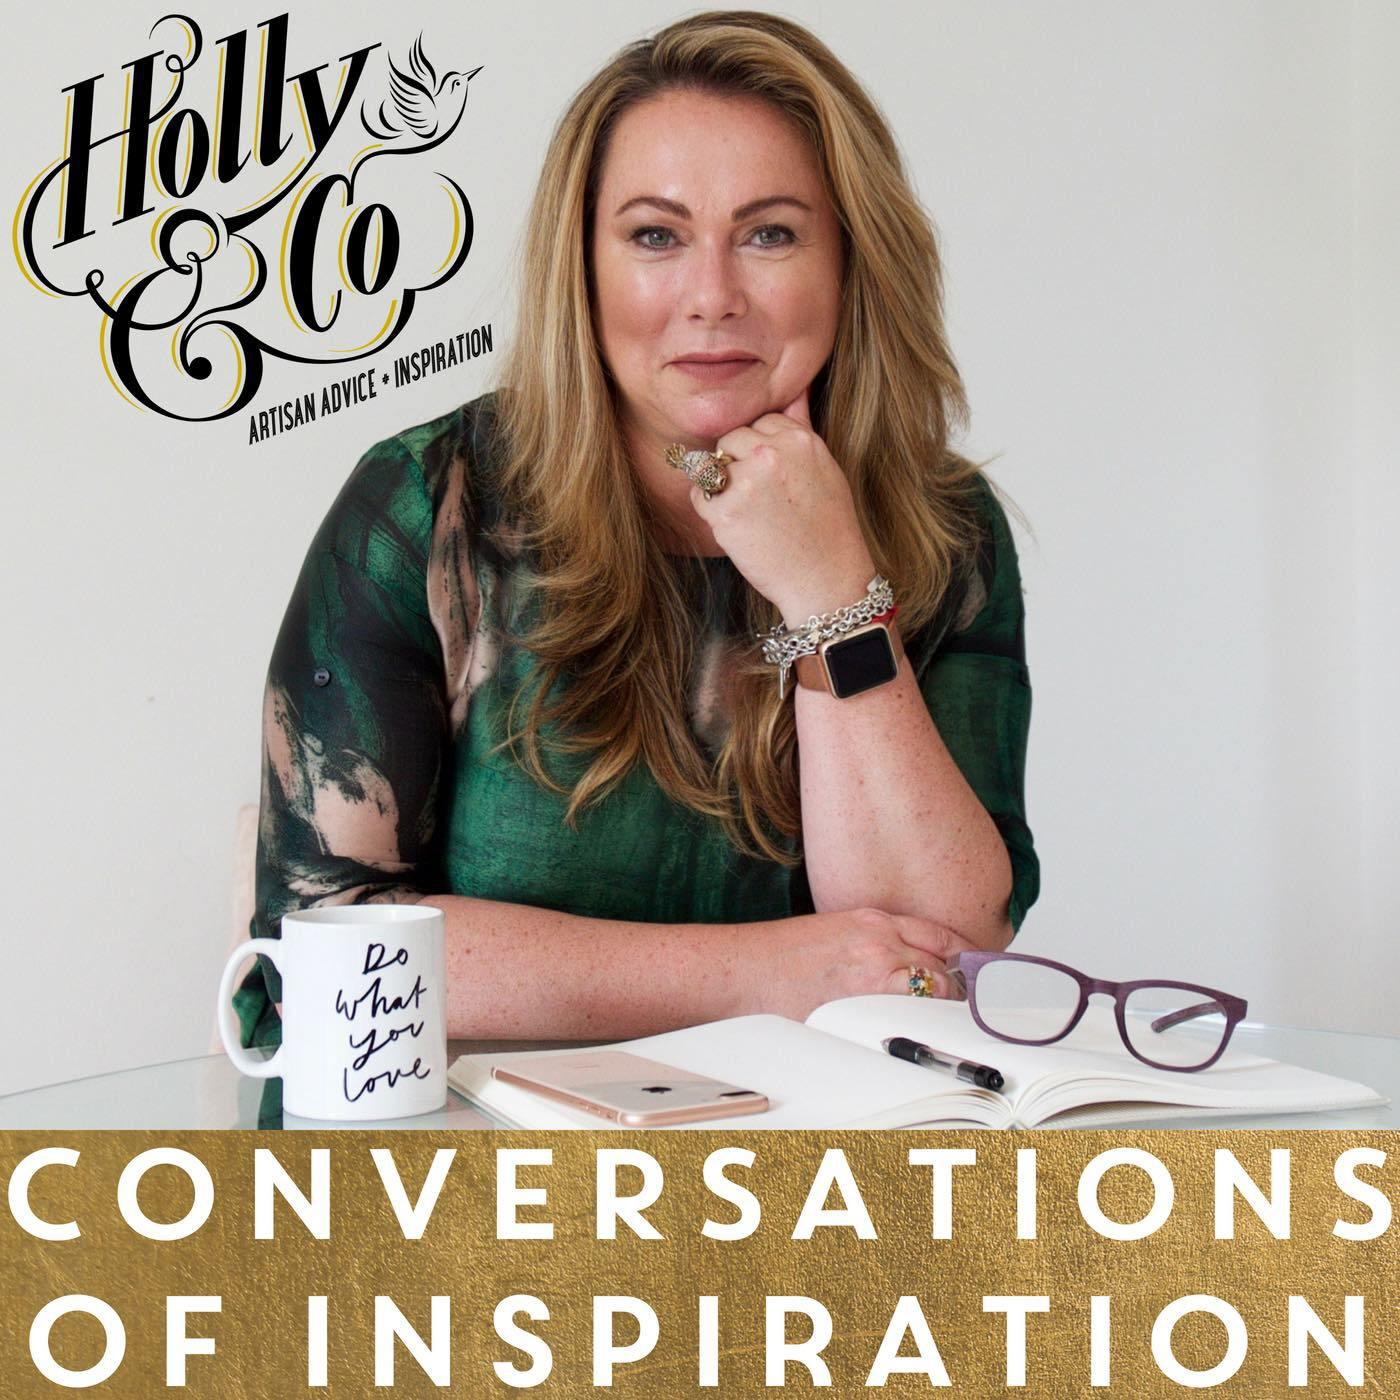 In Conversations of Inspiration, Holly Tucker talks to a new founder each week to hear the highs and lows encountered whilst building their business. -